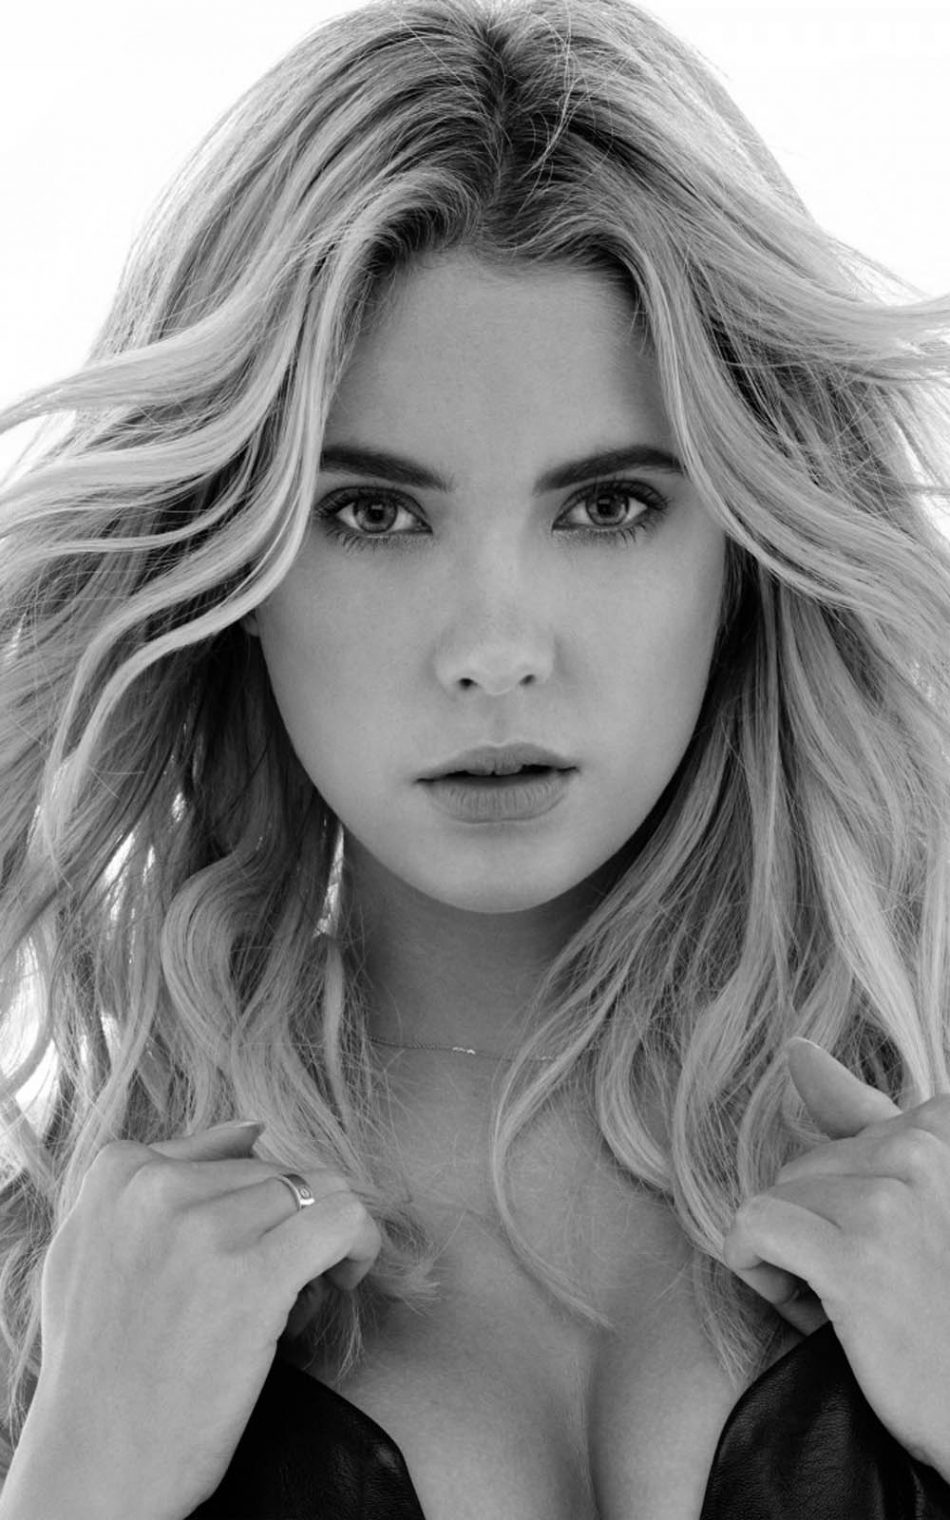 Ashley Benson Hot Photoshoot HD Mobile Wallpaper